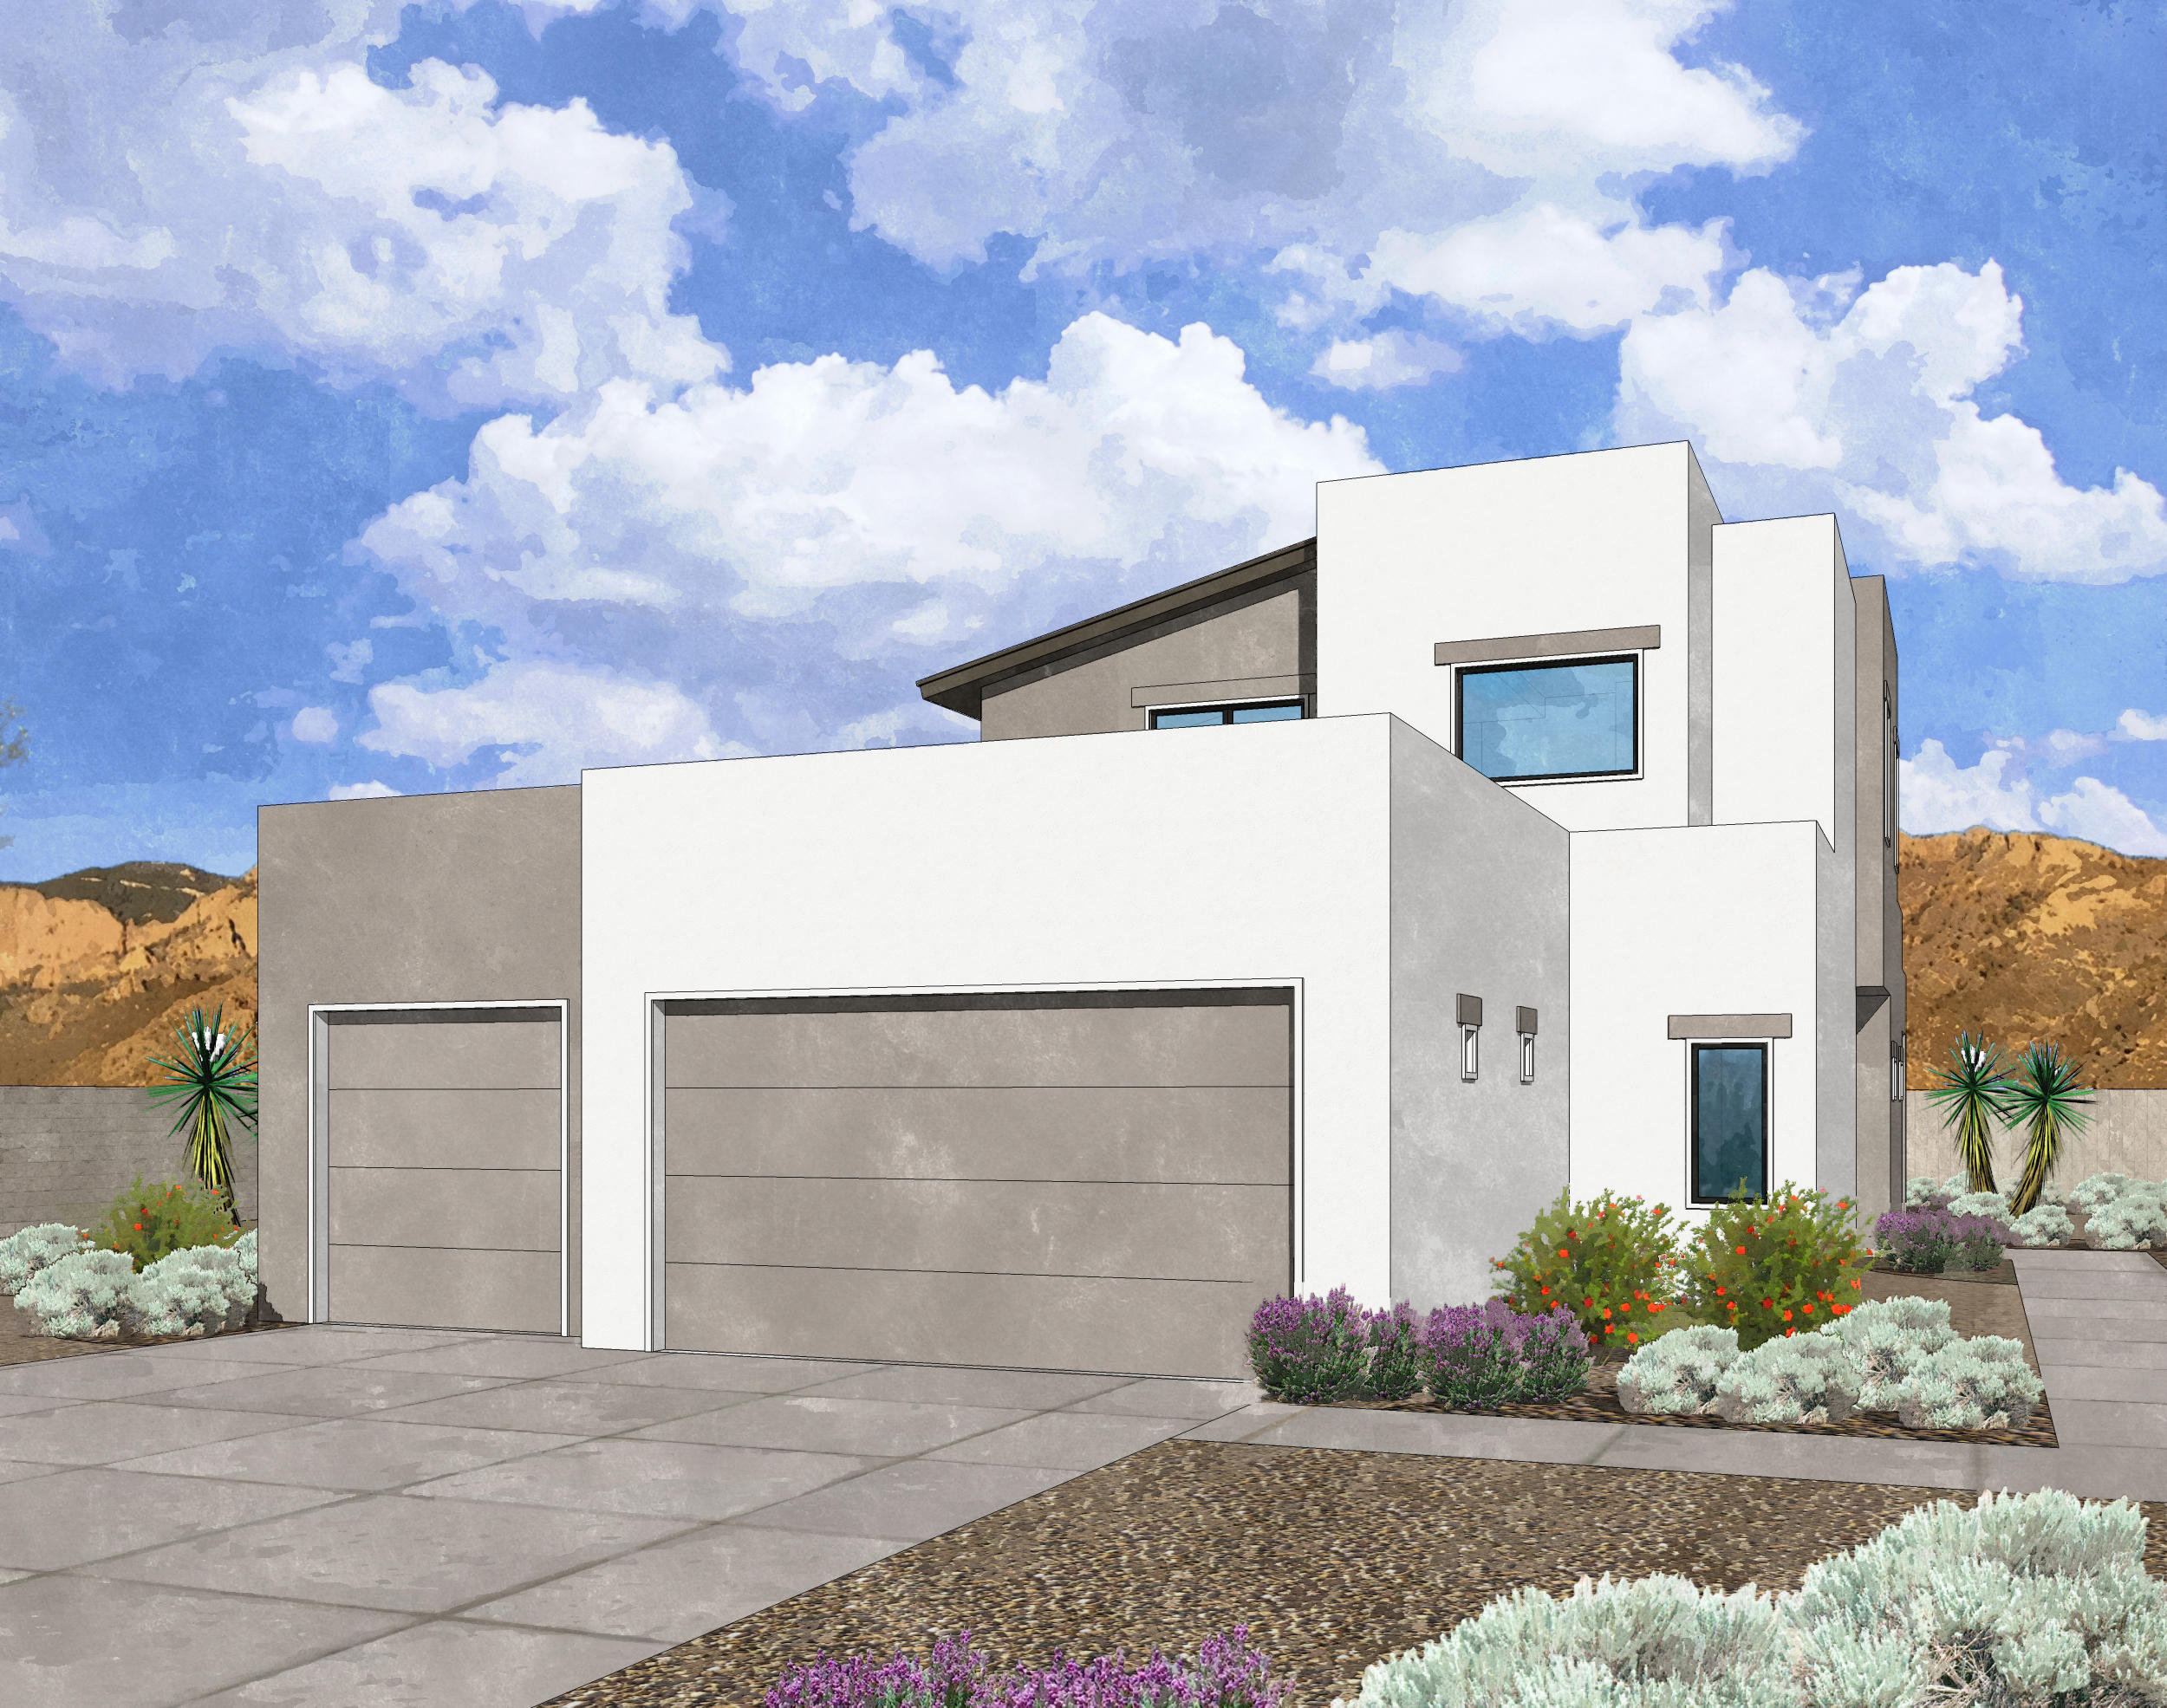 Westway Homes presents Venetian. This amazing home features 3 bedrooms and 2.5 bathrooms. The open living/kitchen/dining space is a large family dream come true. The kitchen features our Bosch gourmet appliance package and designer cabinetry. The kitchen also features a giant walk in pantry. Upstairs is a giant master suite  with a walk out deck facing the mountains and city lights!This house also has a 3 car garage! Come check this out, the house will be ready in December.